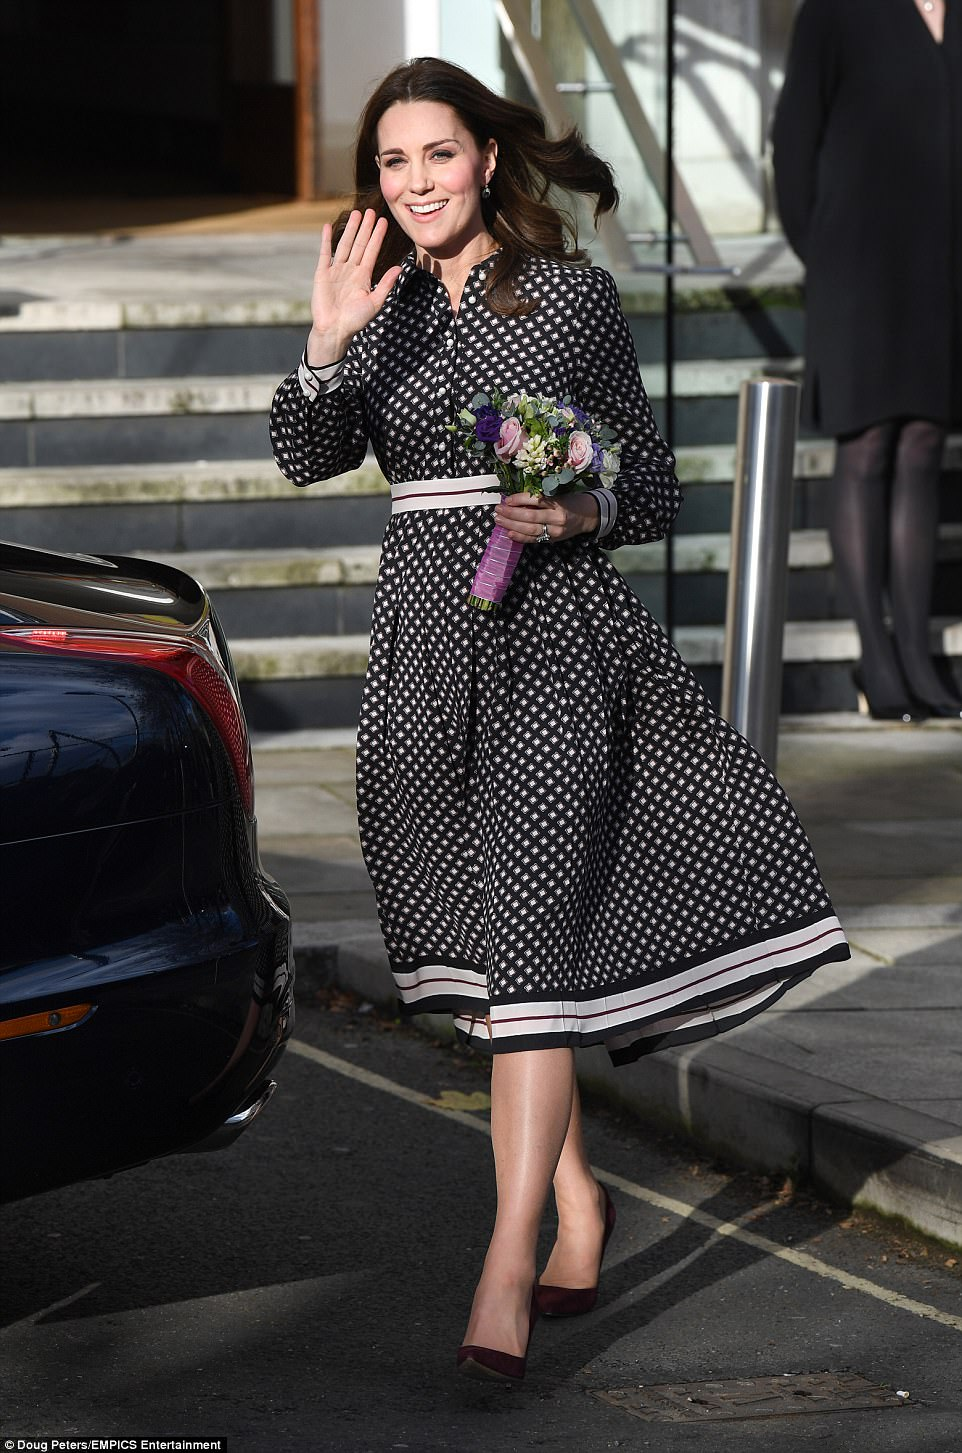 The Duchess looked chic in a pleated Kate Spade dress, which she offset with burgundy accessories for the occasion